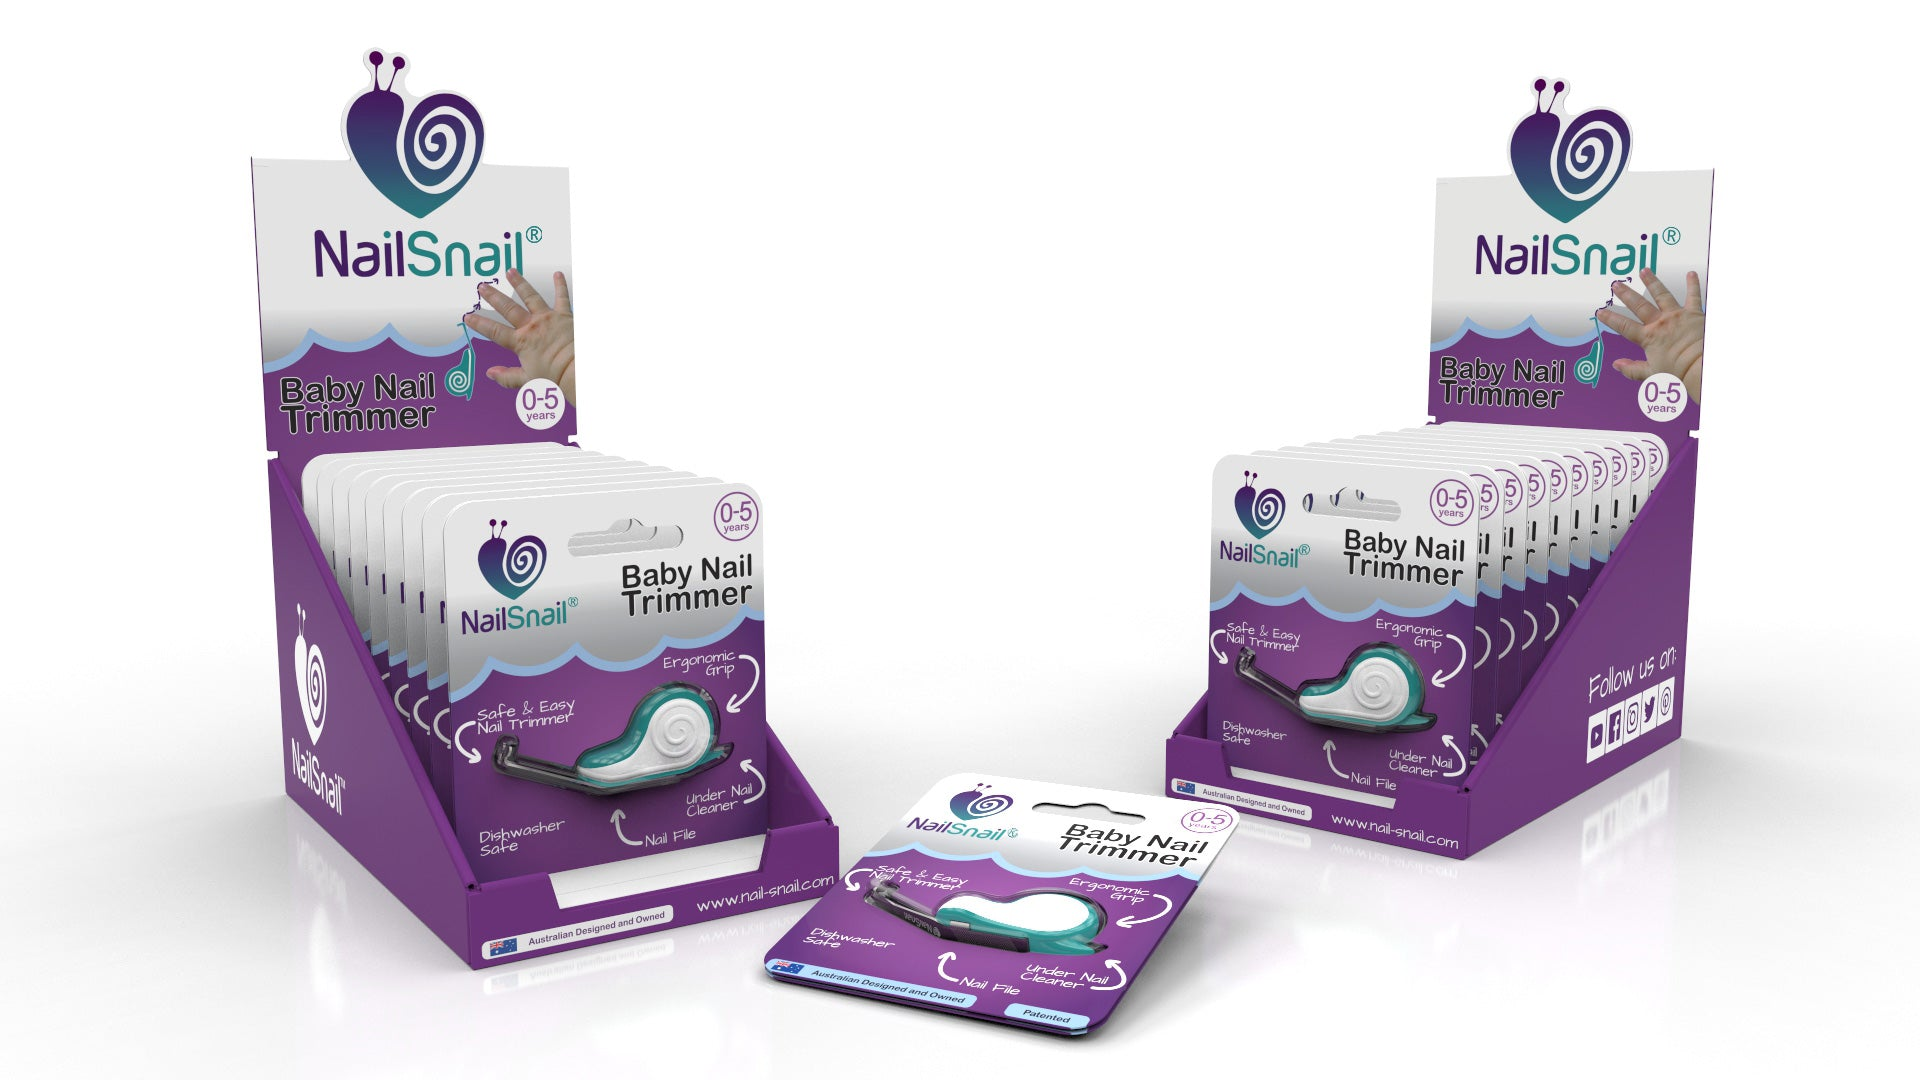 Nail Snail Shelf Ready Carton Display Box